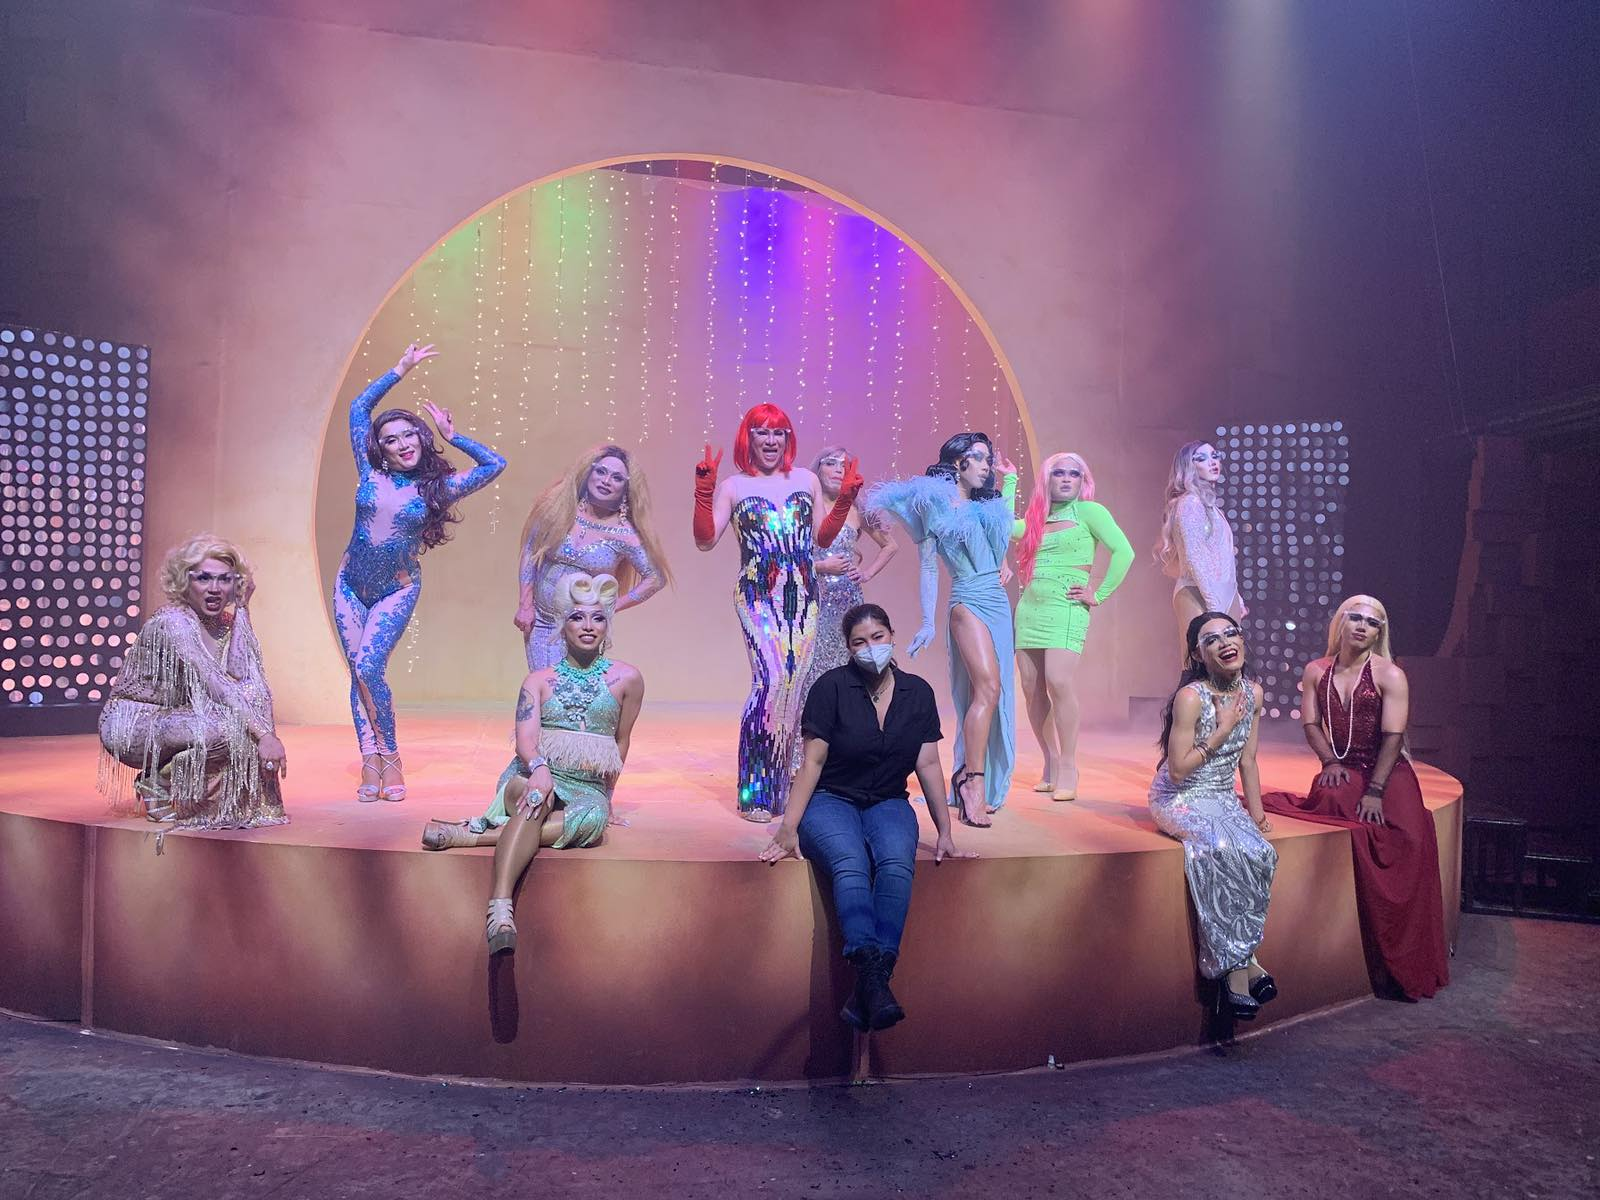 Angel Locsin, 'Iba Yan' hold online benefit concert for drag queens affected by pandemic